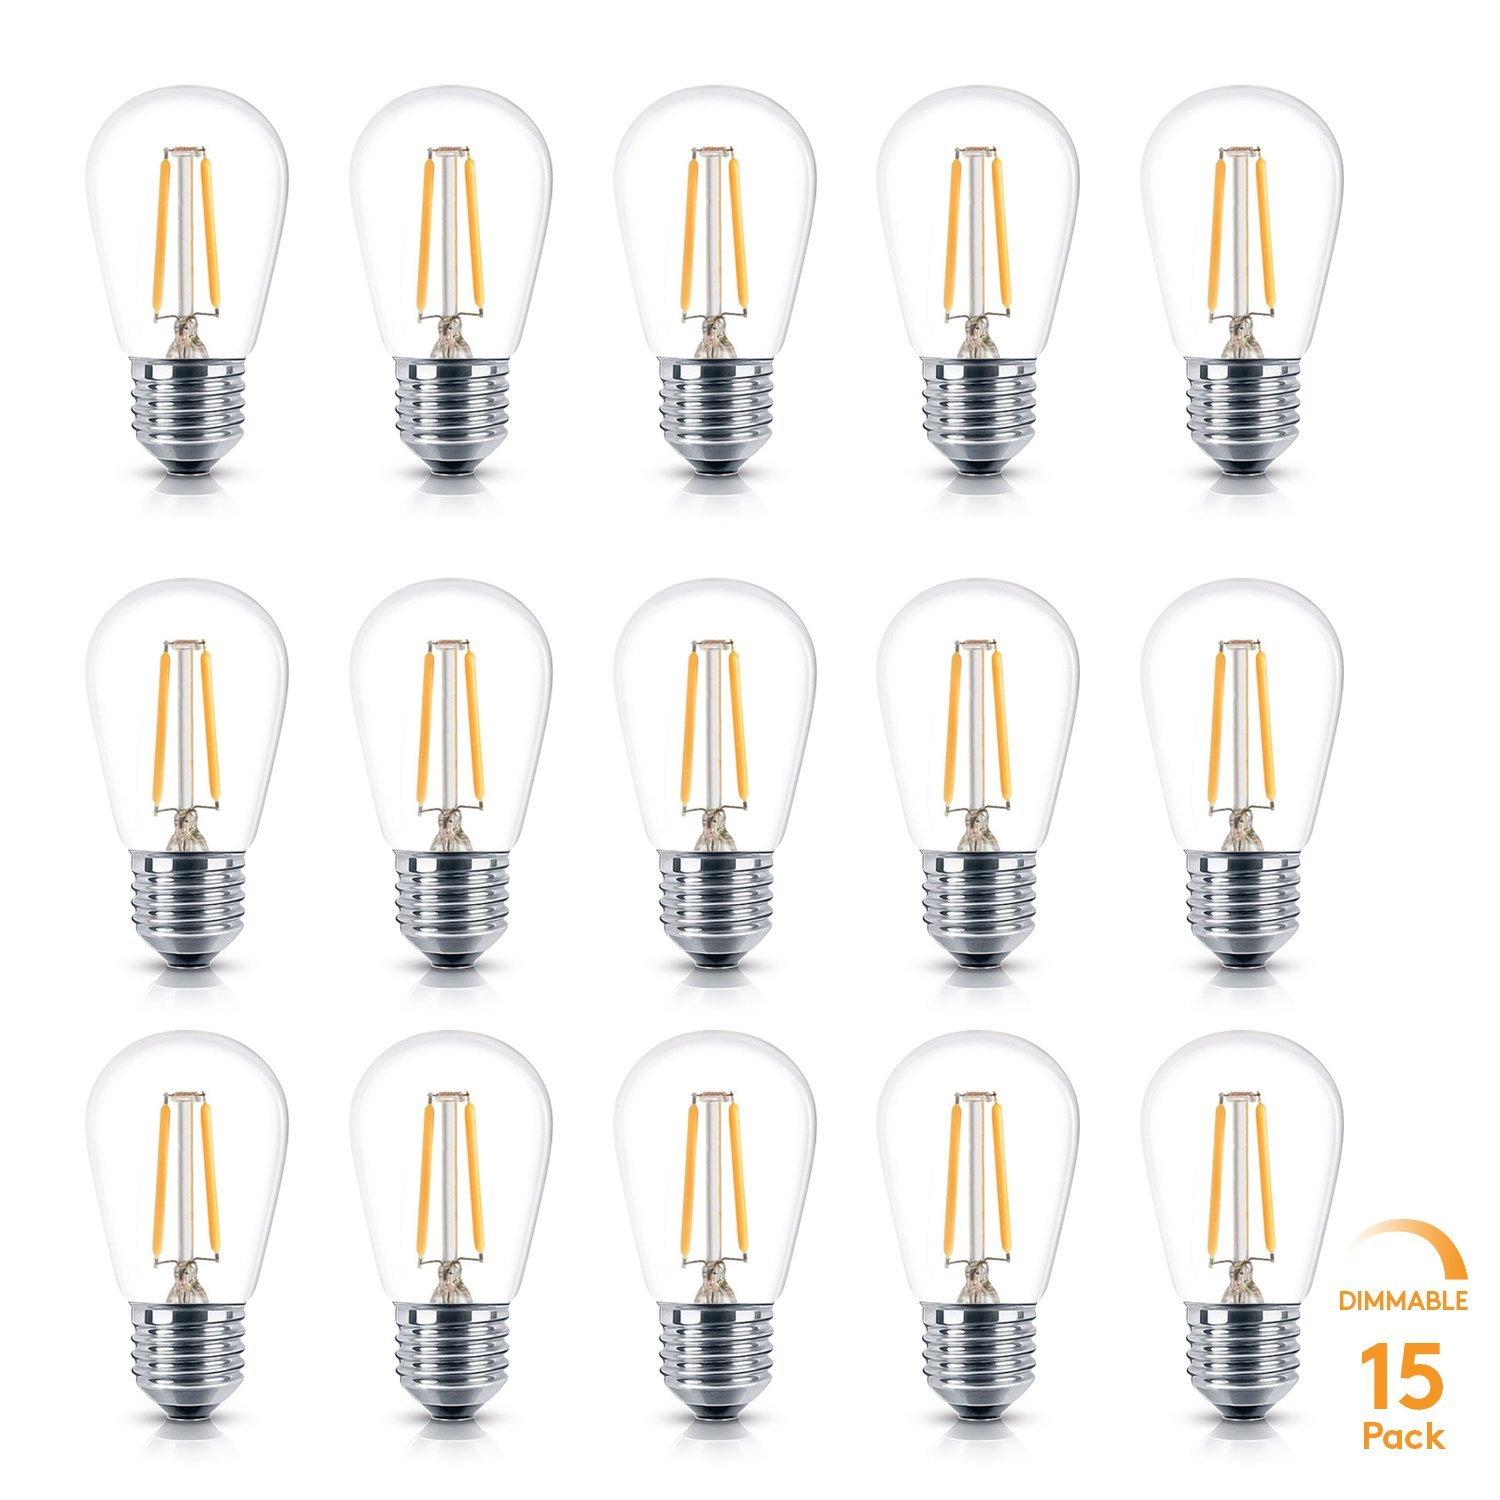 Brightech Ambience PRO LED S14 2 Watt Warm White 2700K Dimmable Bulb - Equal To 20-25W Incandescent Bulbs - Outdoor String Lights – Edison-inspired Exposed Filaments Design- 15 Pack - E26 Base